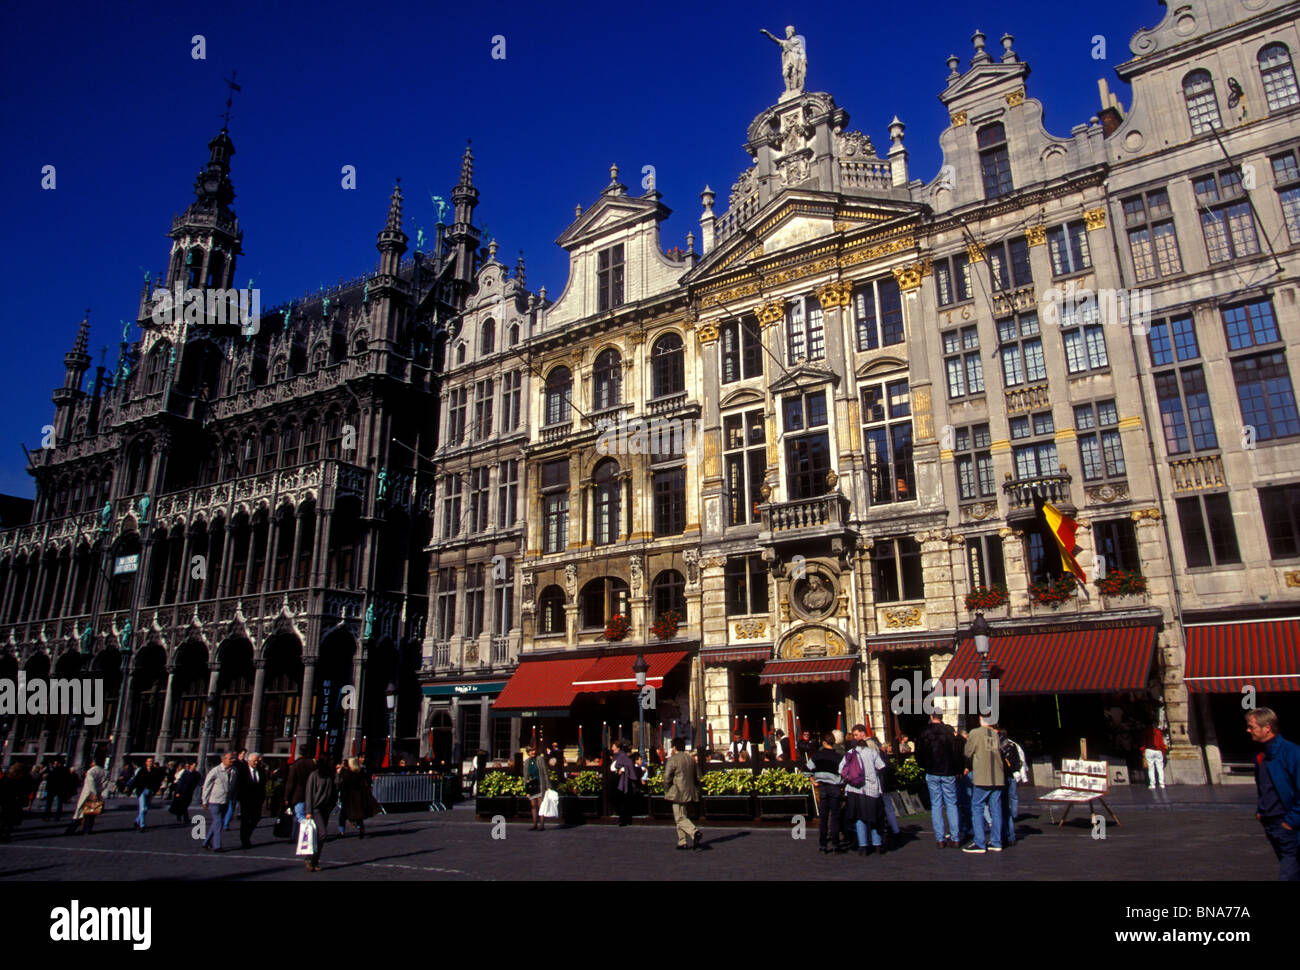 People, Guild Houses, Grand Place, city of Brussels, Brussels Capital Region, Belgium, Europe Stock Photo